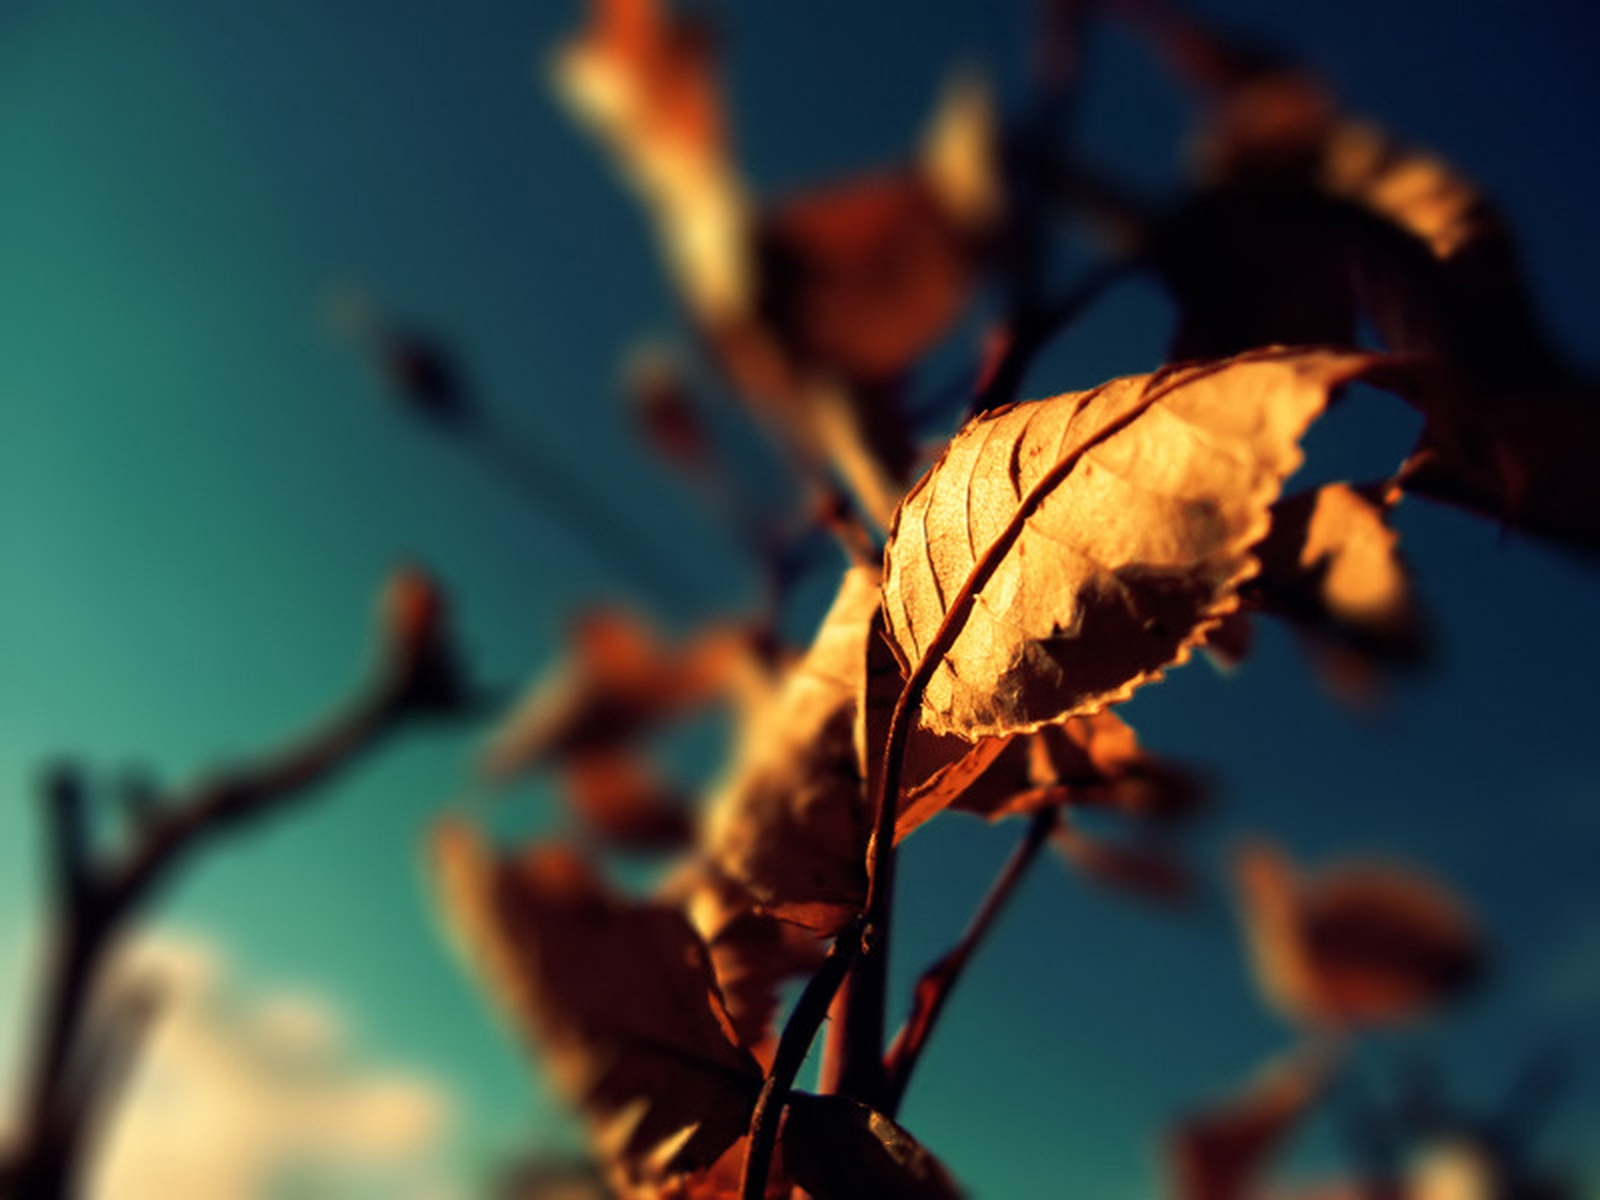 Nature and autumn, wallpaper, a dried leaf on a tree